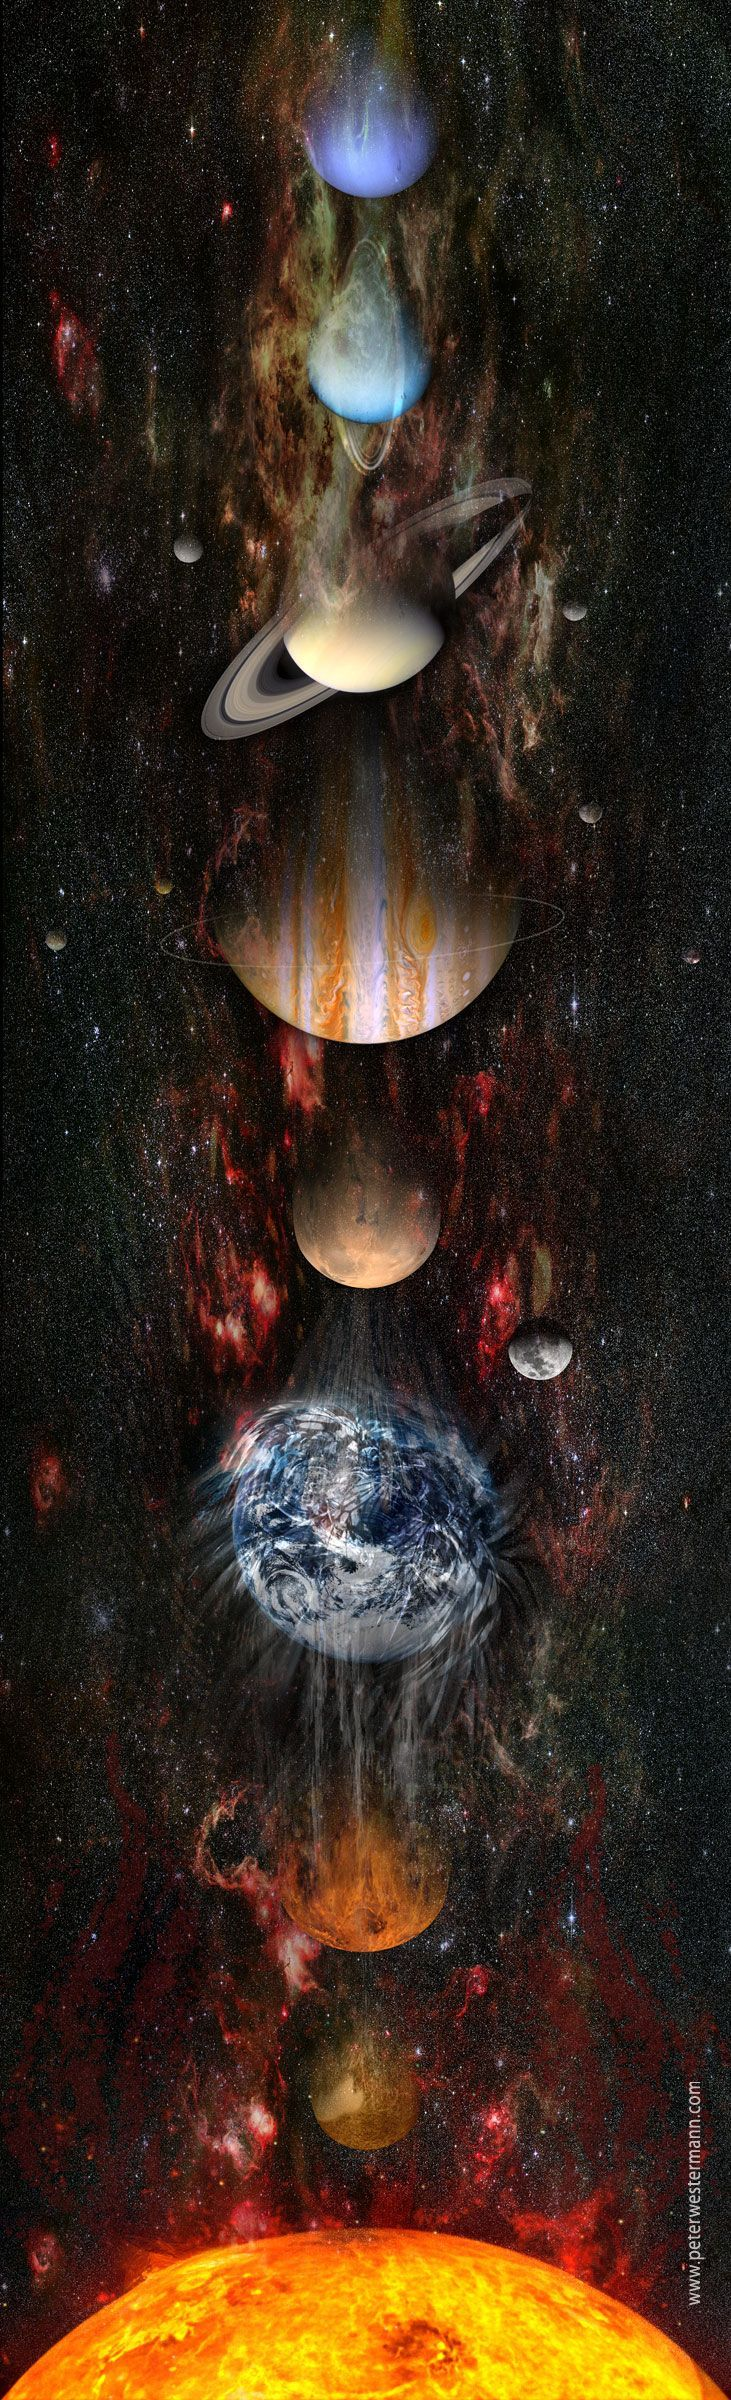 G Adventure holidays are out of this world. Click here: http://www.awin1.com/awclick.php?mid=2651&id=119939